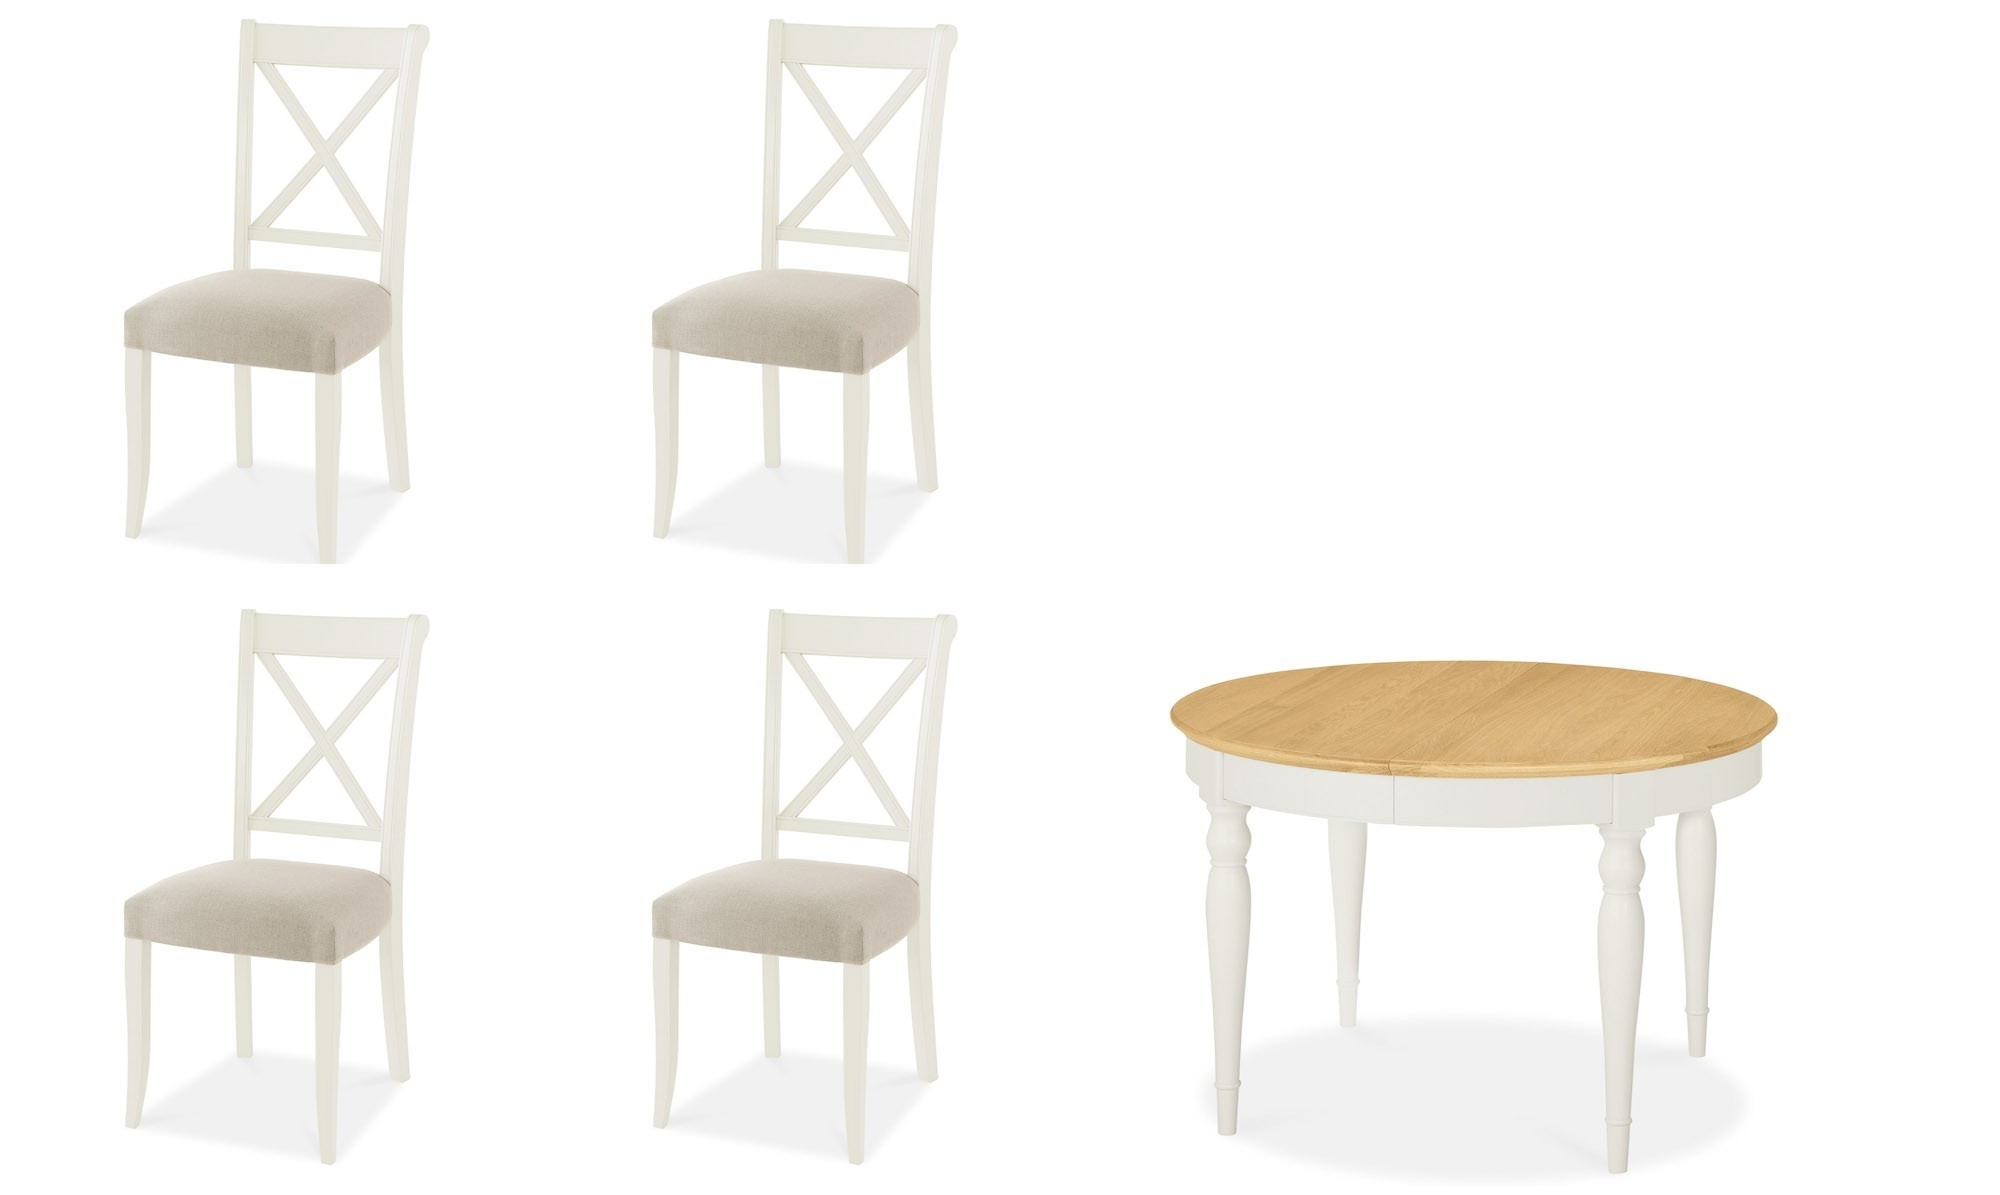 Circular Extending Dining Tables And Chairs Throughout Most Current Georgie – Round Extending Dining Table And Chairs In Cream – Oak Top (View 8 of 25)